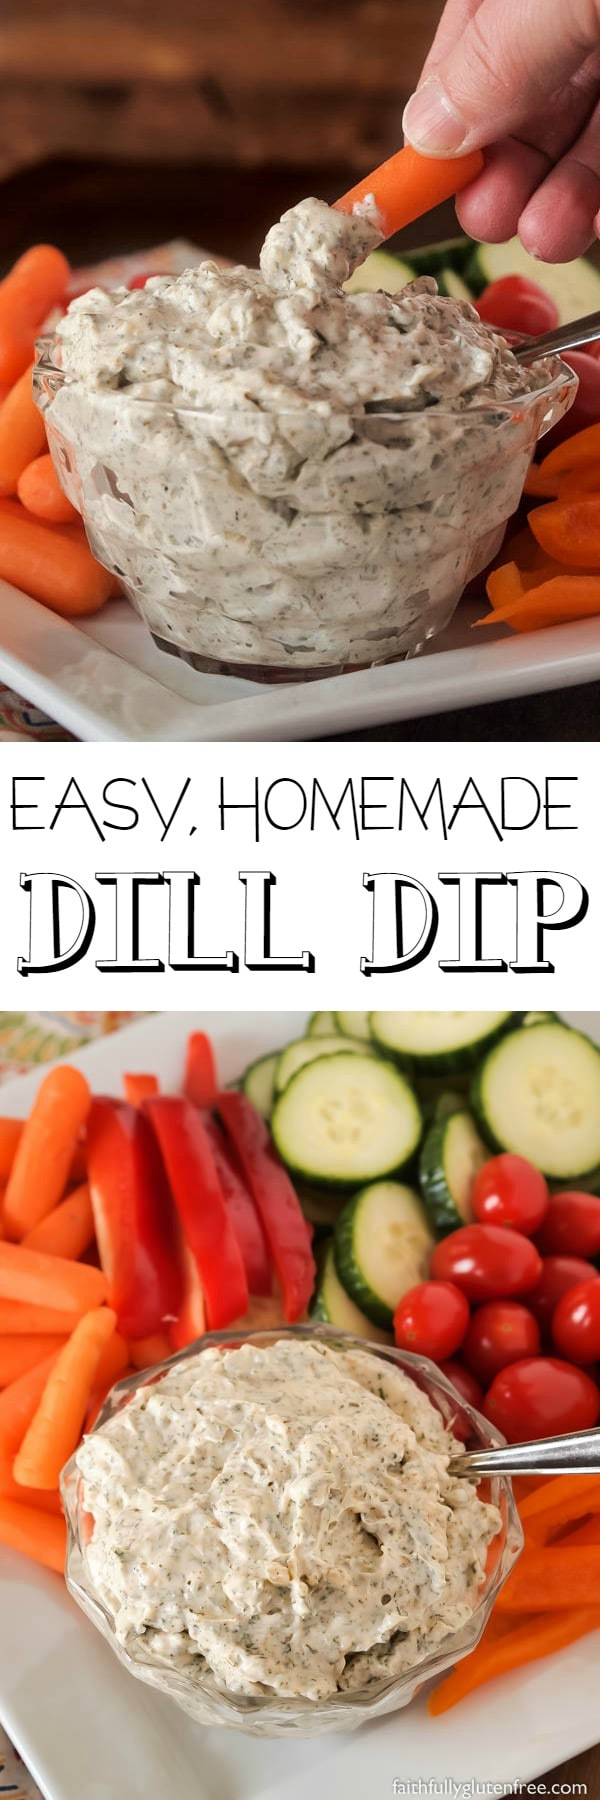 Whip up a batch of this easy and delicious homemade Dill Dip the next time you're looking for a dip for your fresh vegetables or your ripple chips. This creamy dip has been our go-to dip for years.